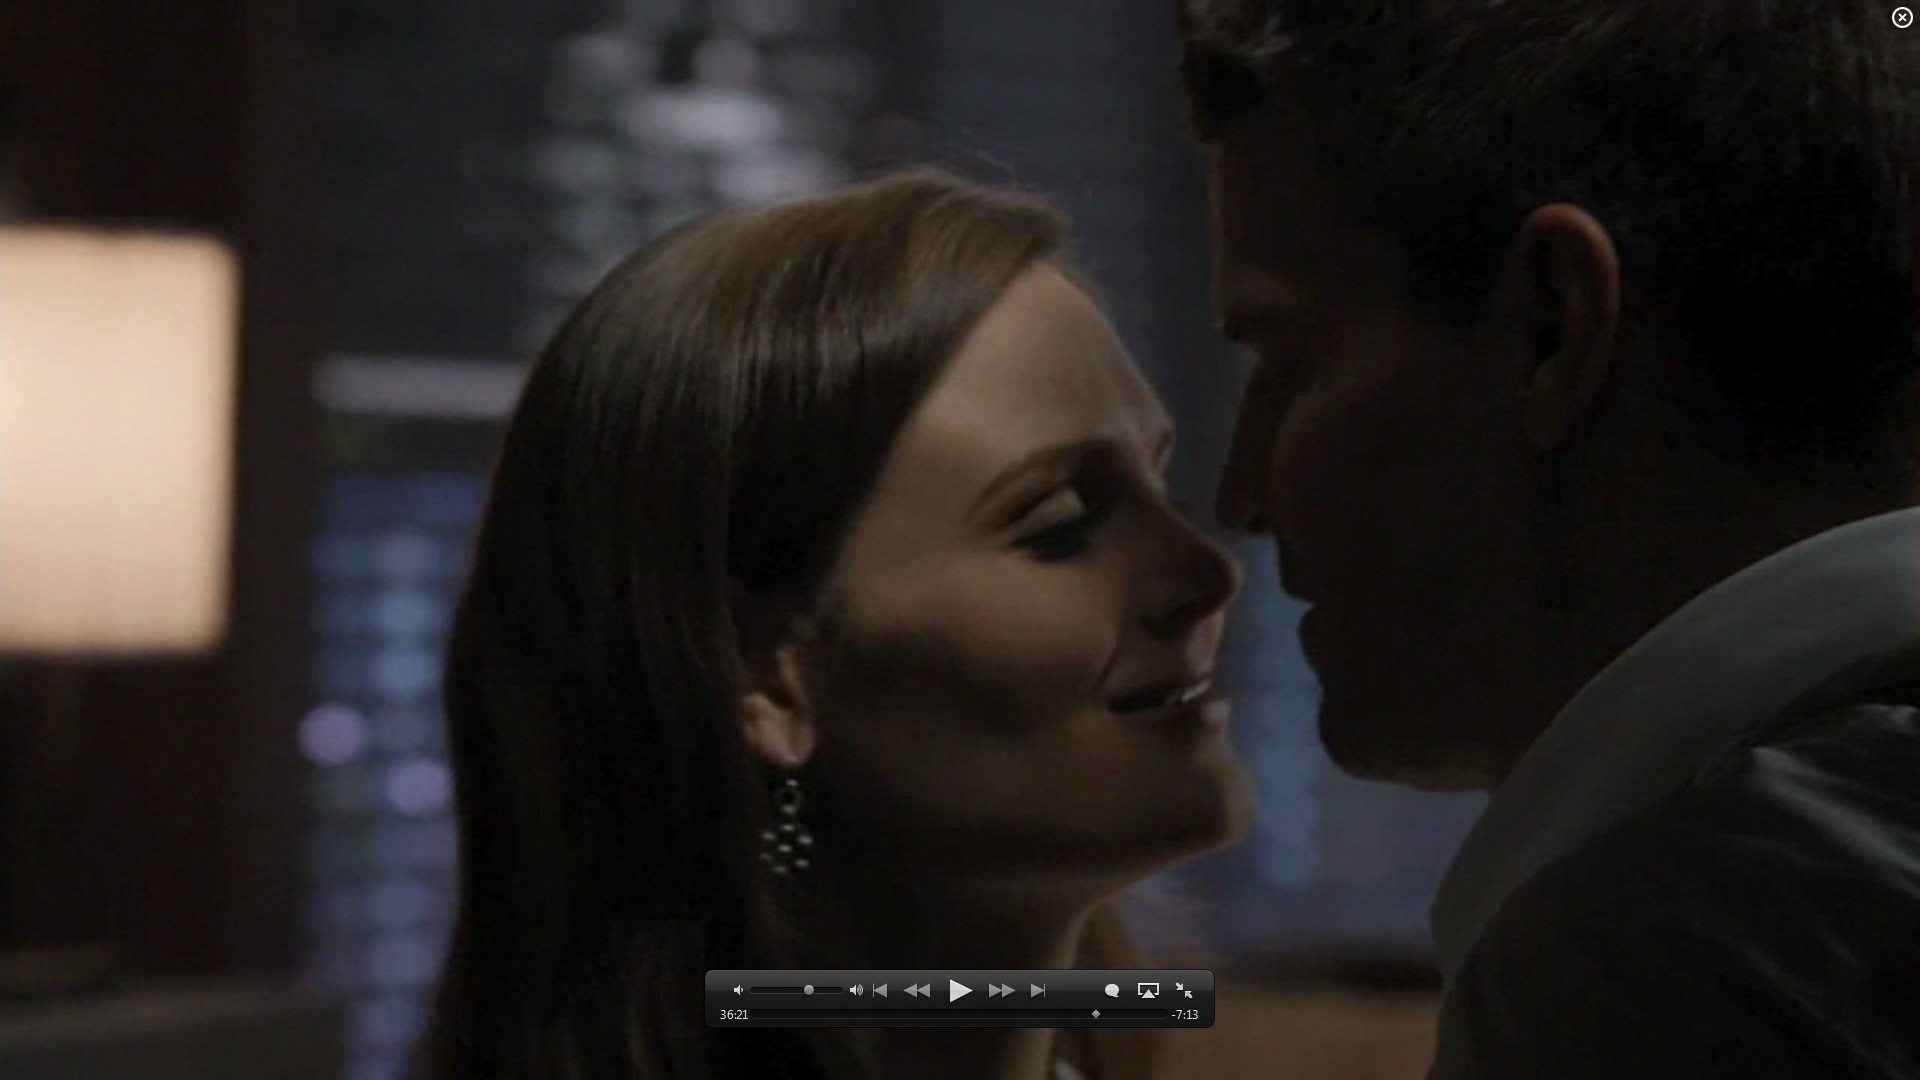 7x01 kiss booth and bones image 26582023 fanpop